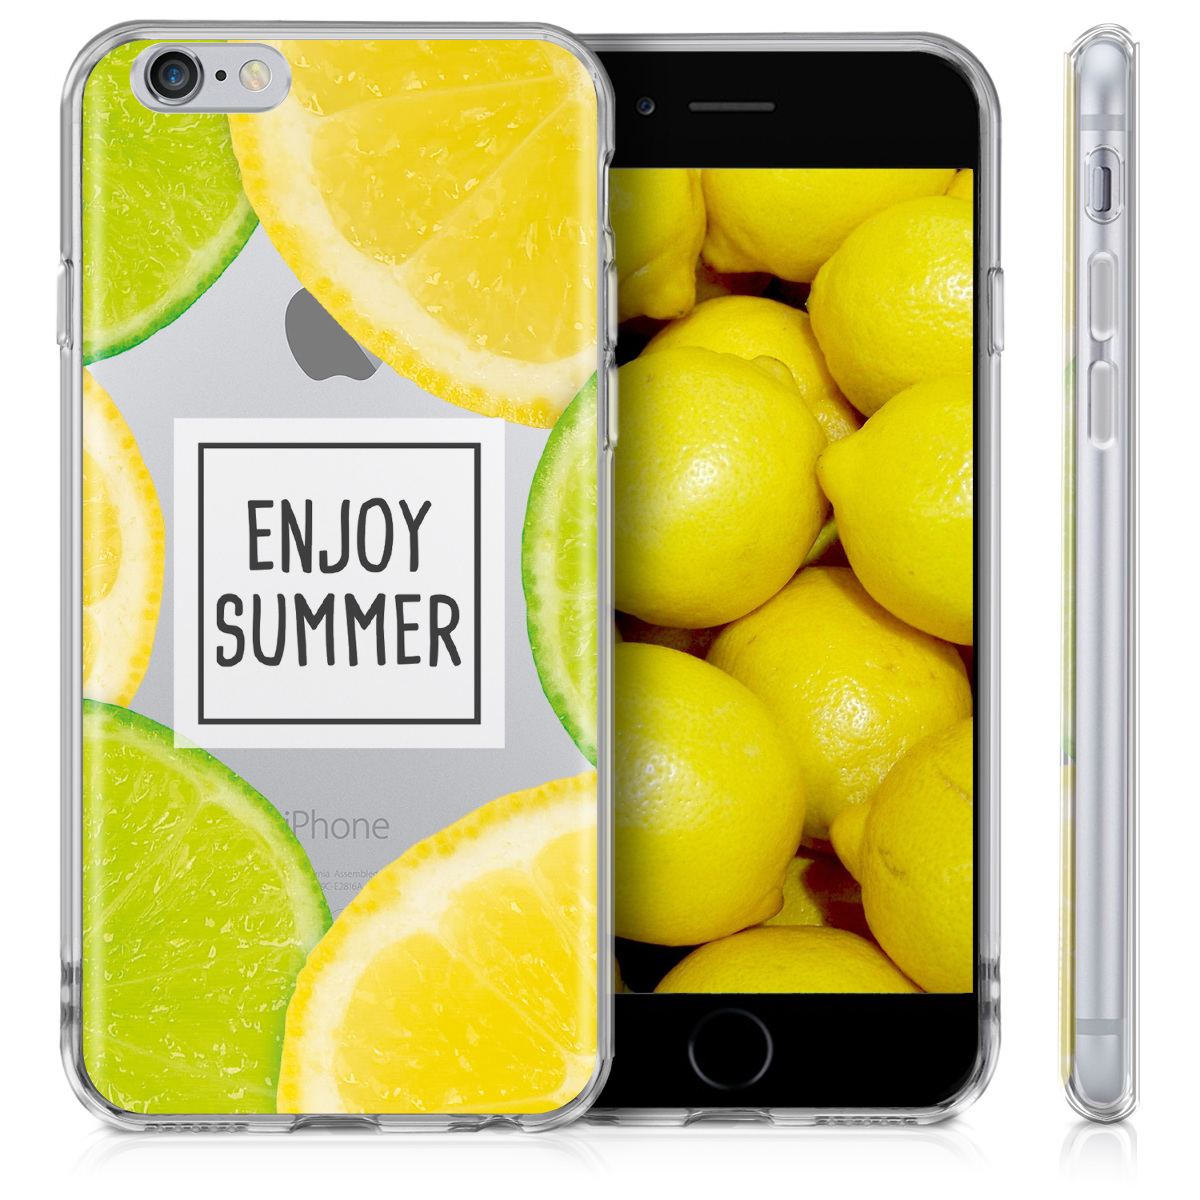 COQUE-SOUPLE-EN-SILICONE-POUR-APPLE-IPHONE-6-6S